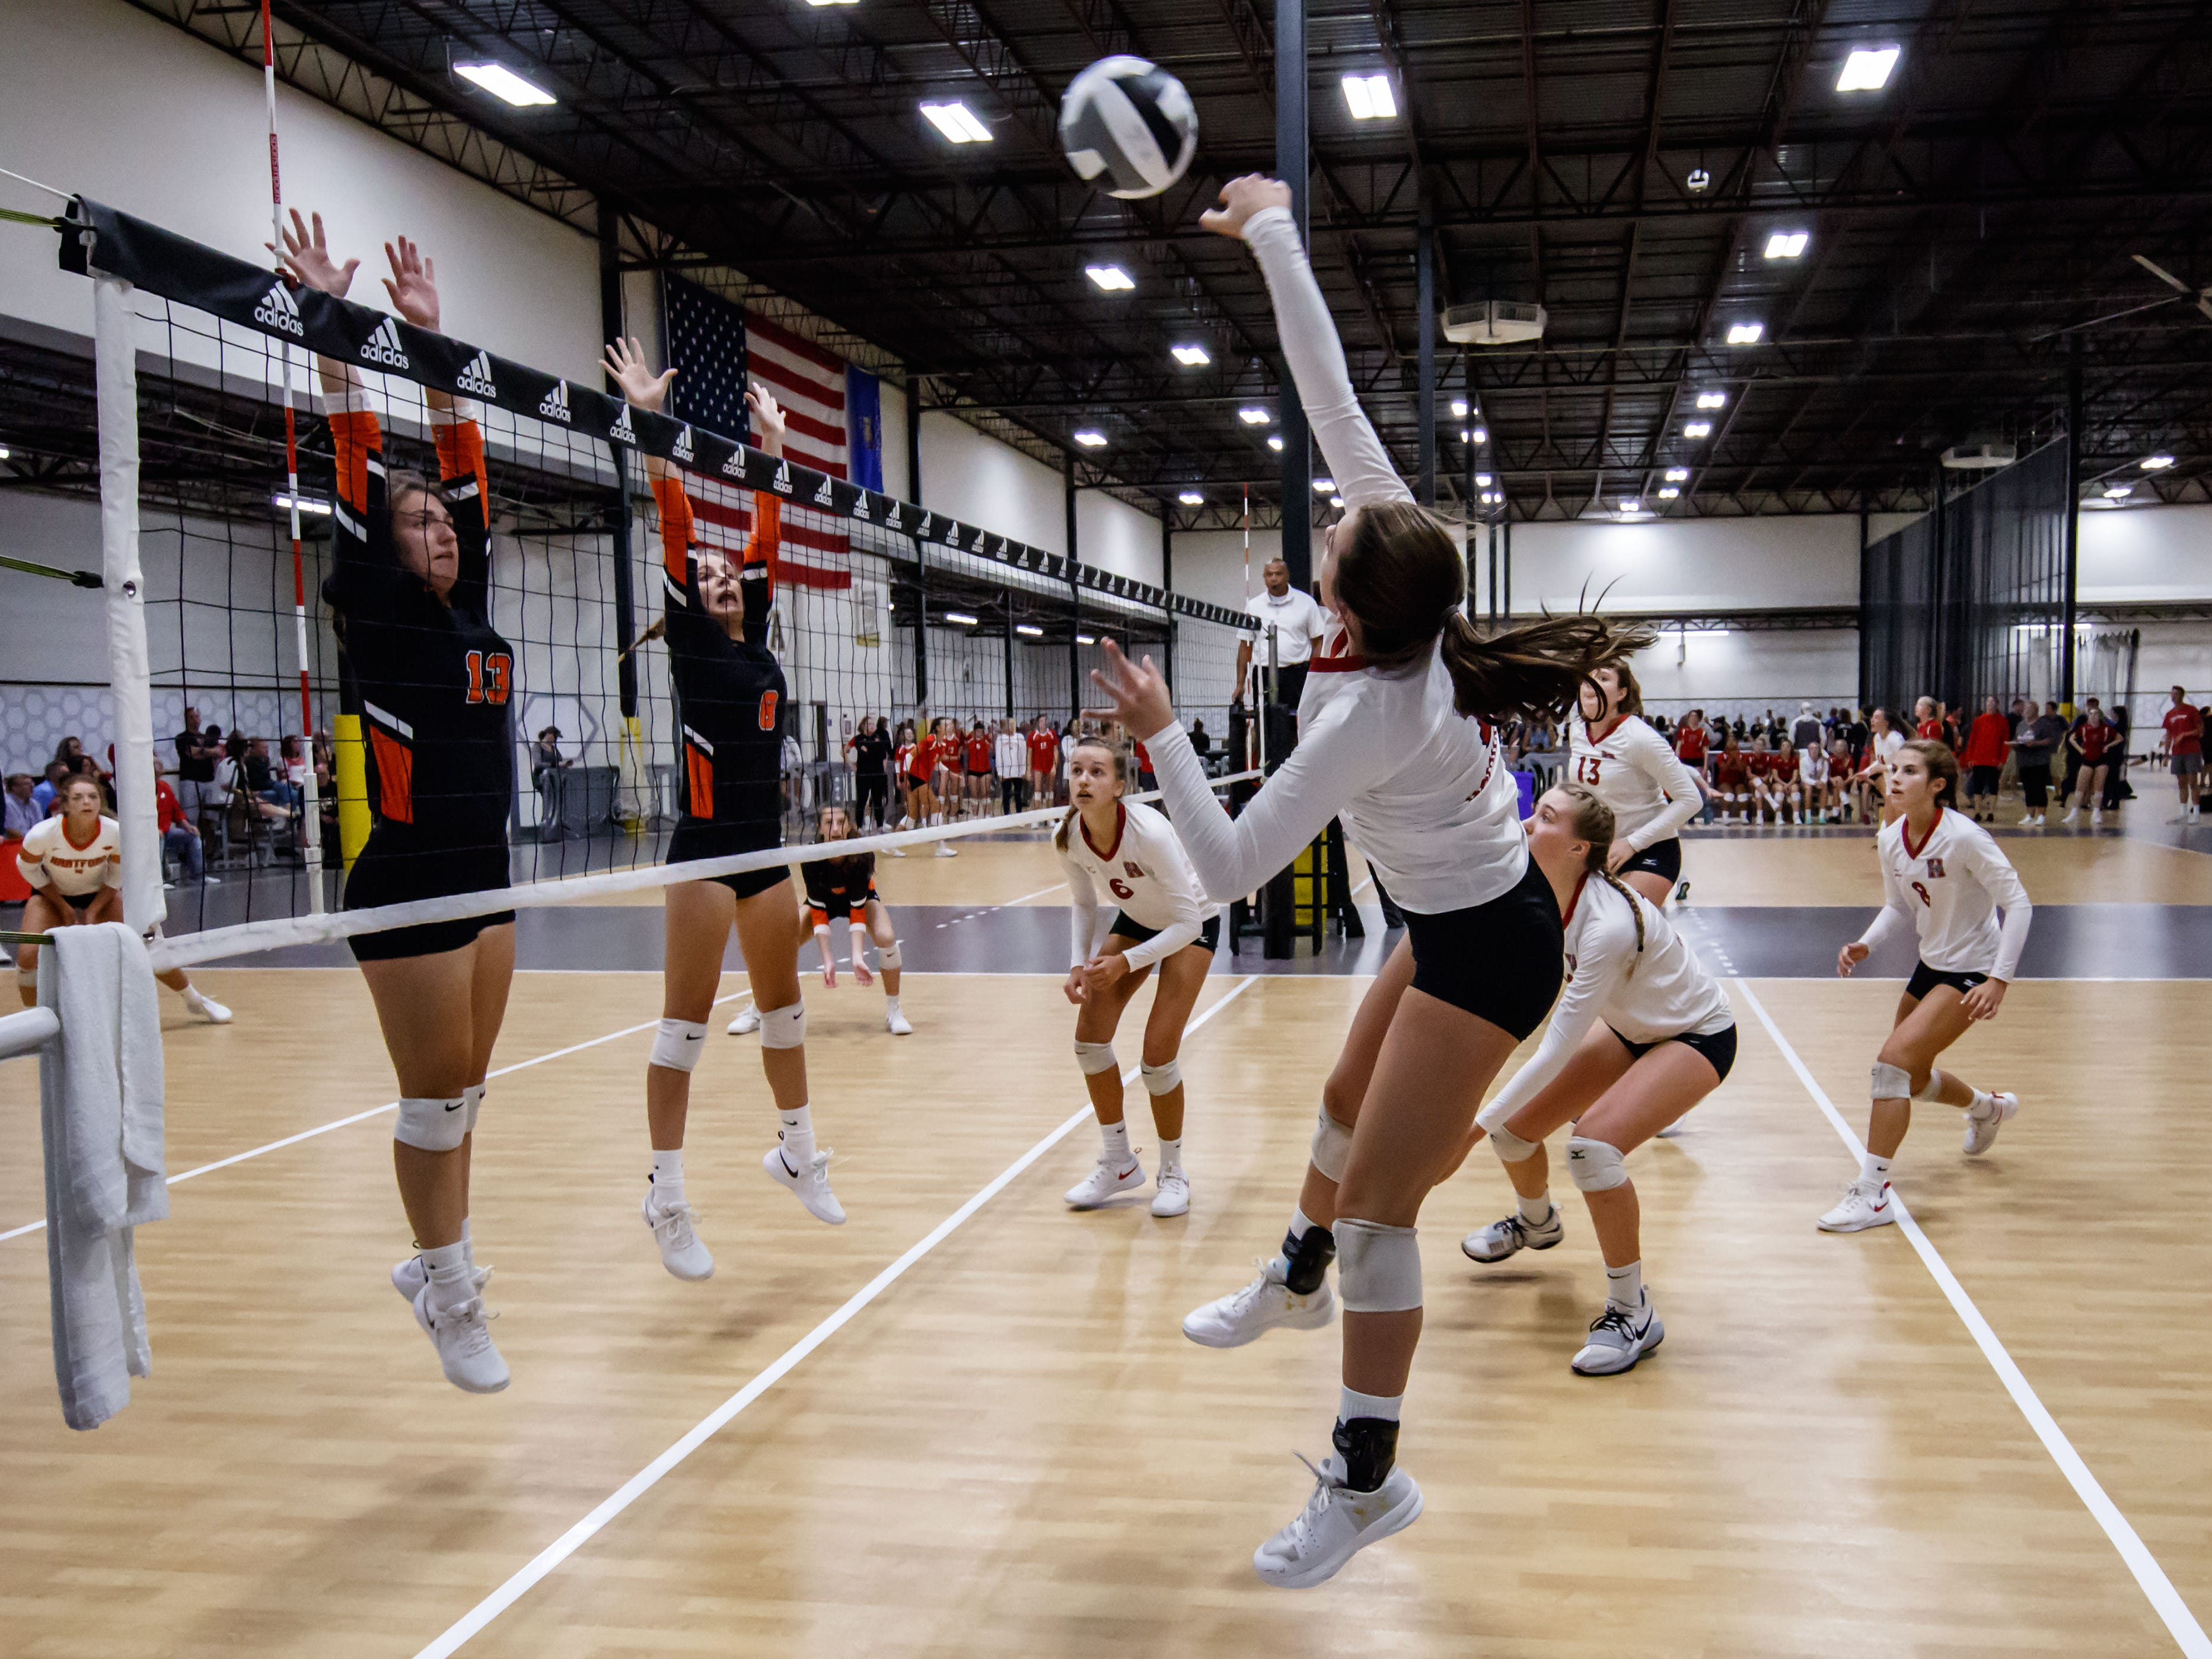 Sussex Hamilton junior Jessica Bagley (7) elevates for a kill during a match at the 2018 Eastbay Charger Challenge hosted by Sussex Hamilton at the Milwaukee Sting Center in Menomonee Falls on Saturday, Sept. 15.